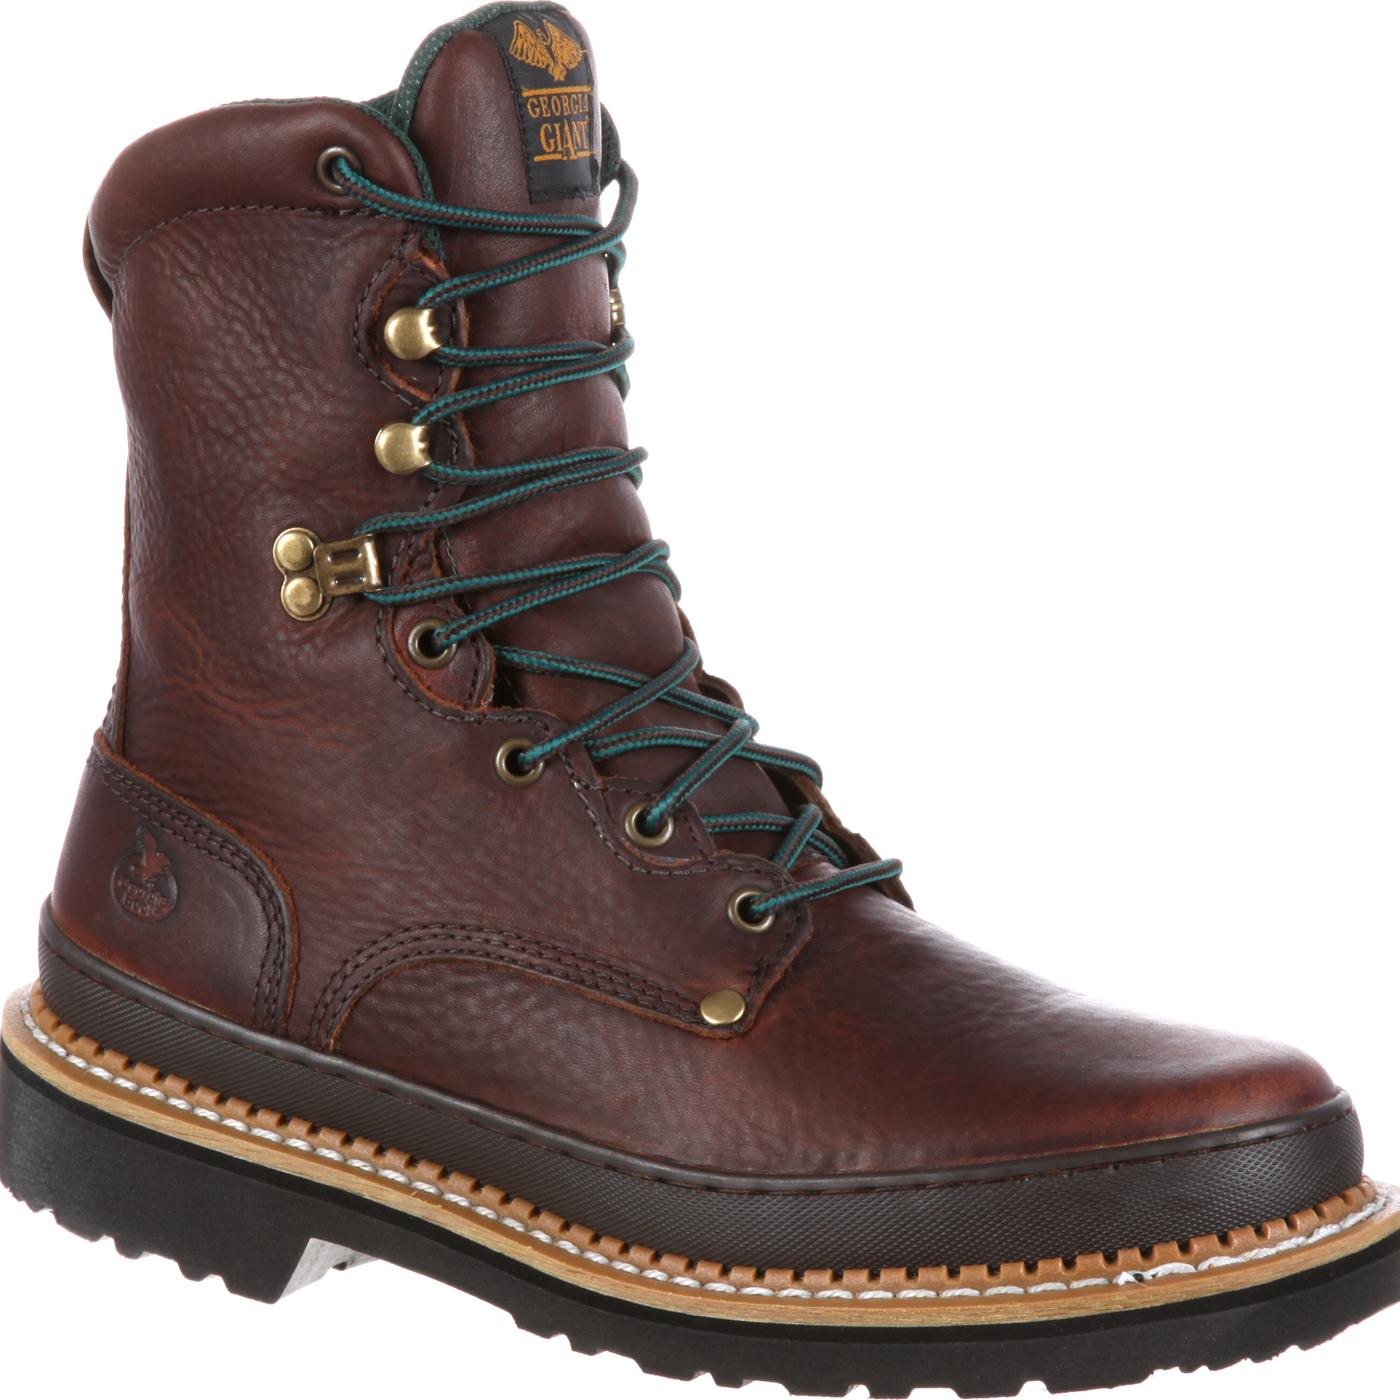 largest selection of 2019 sports shoes hot sales Georgia Giant Work Boot